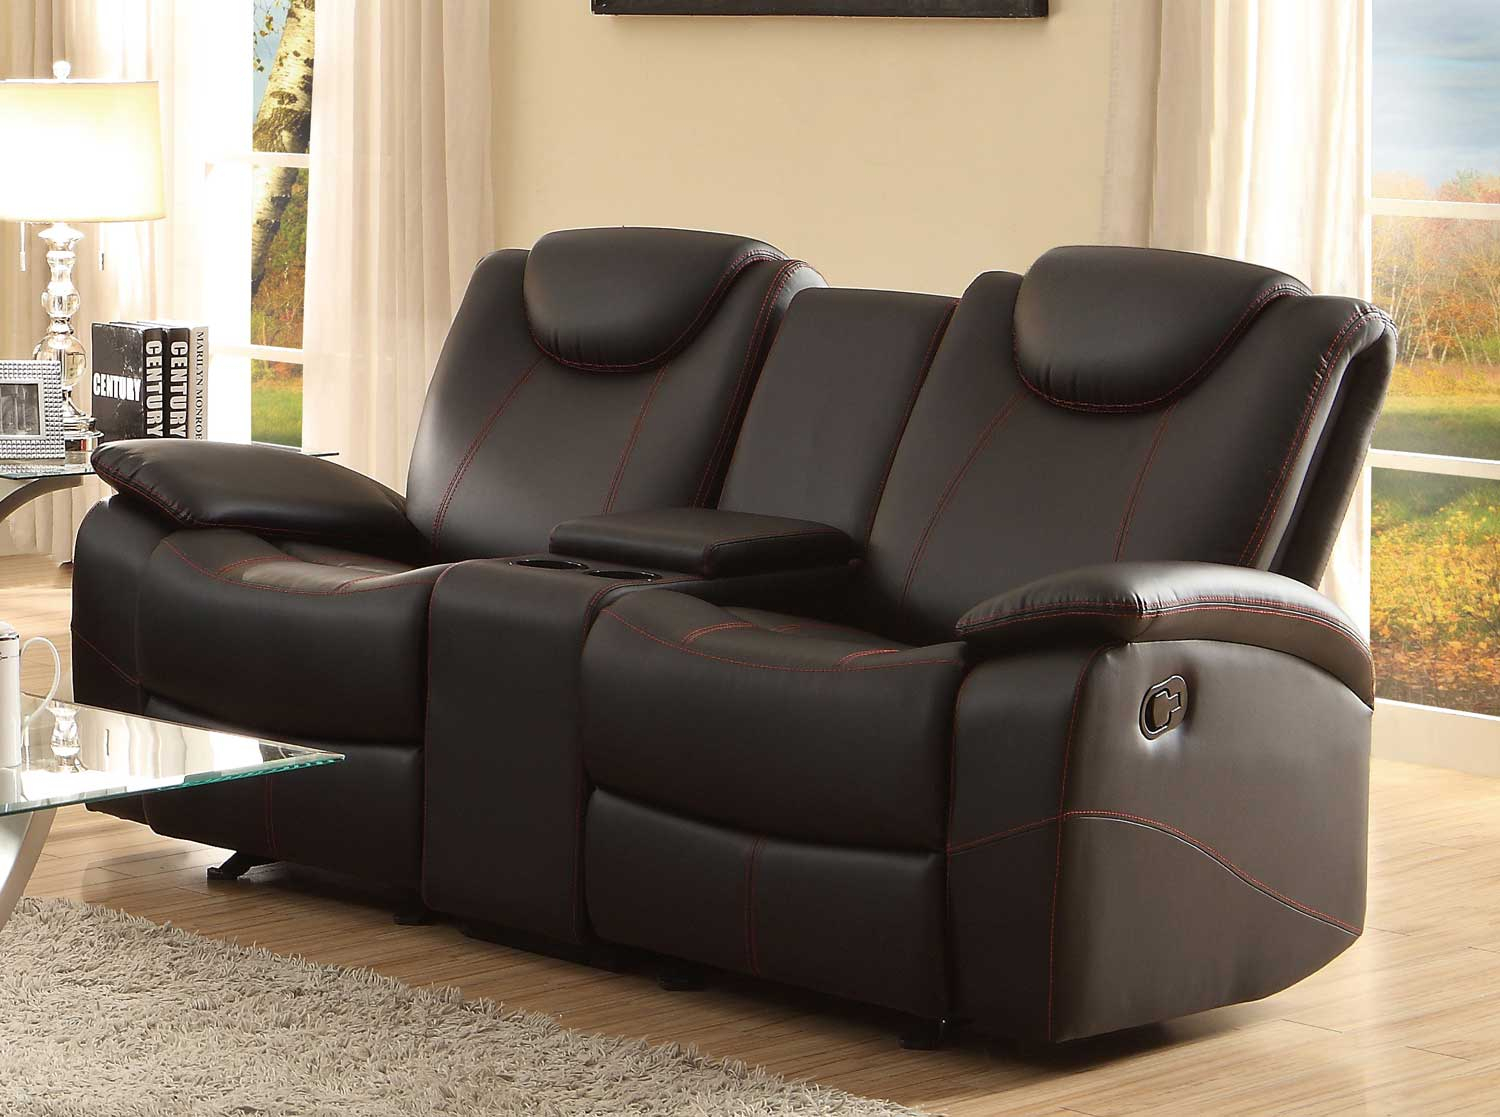 Homelegance Talbot Black Double Glider Reclining Loveseat Within Double Glider Loveseats (Image 14 of 25)